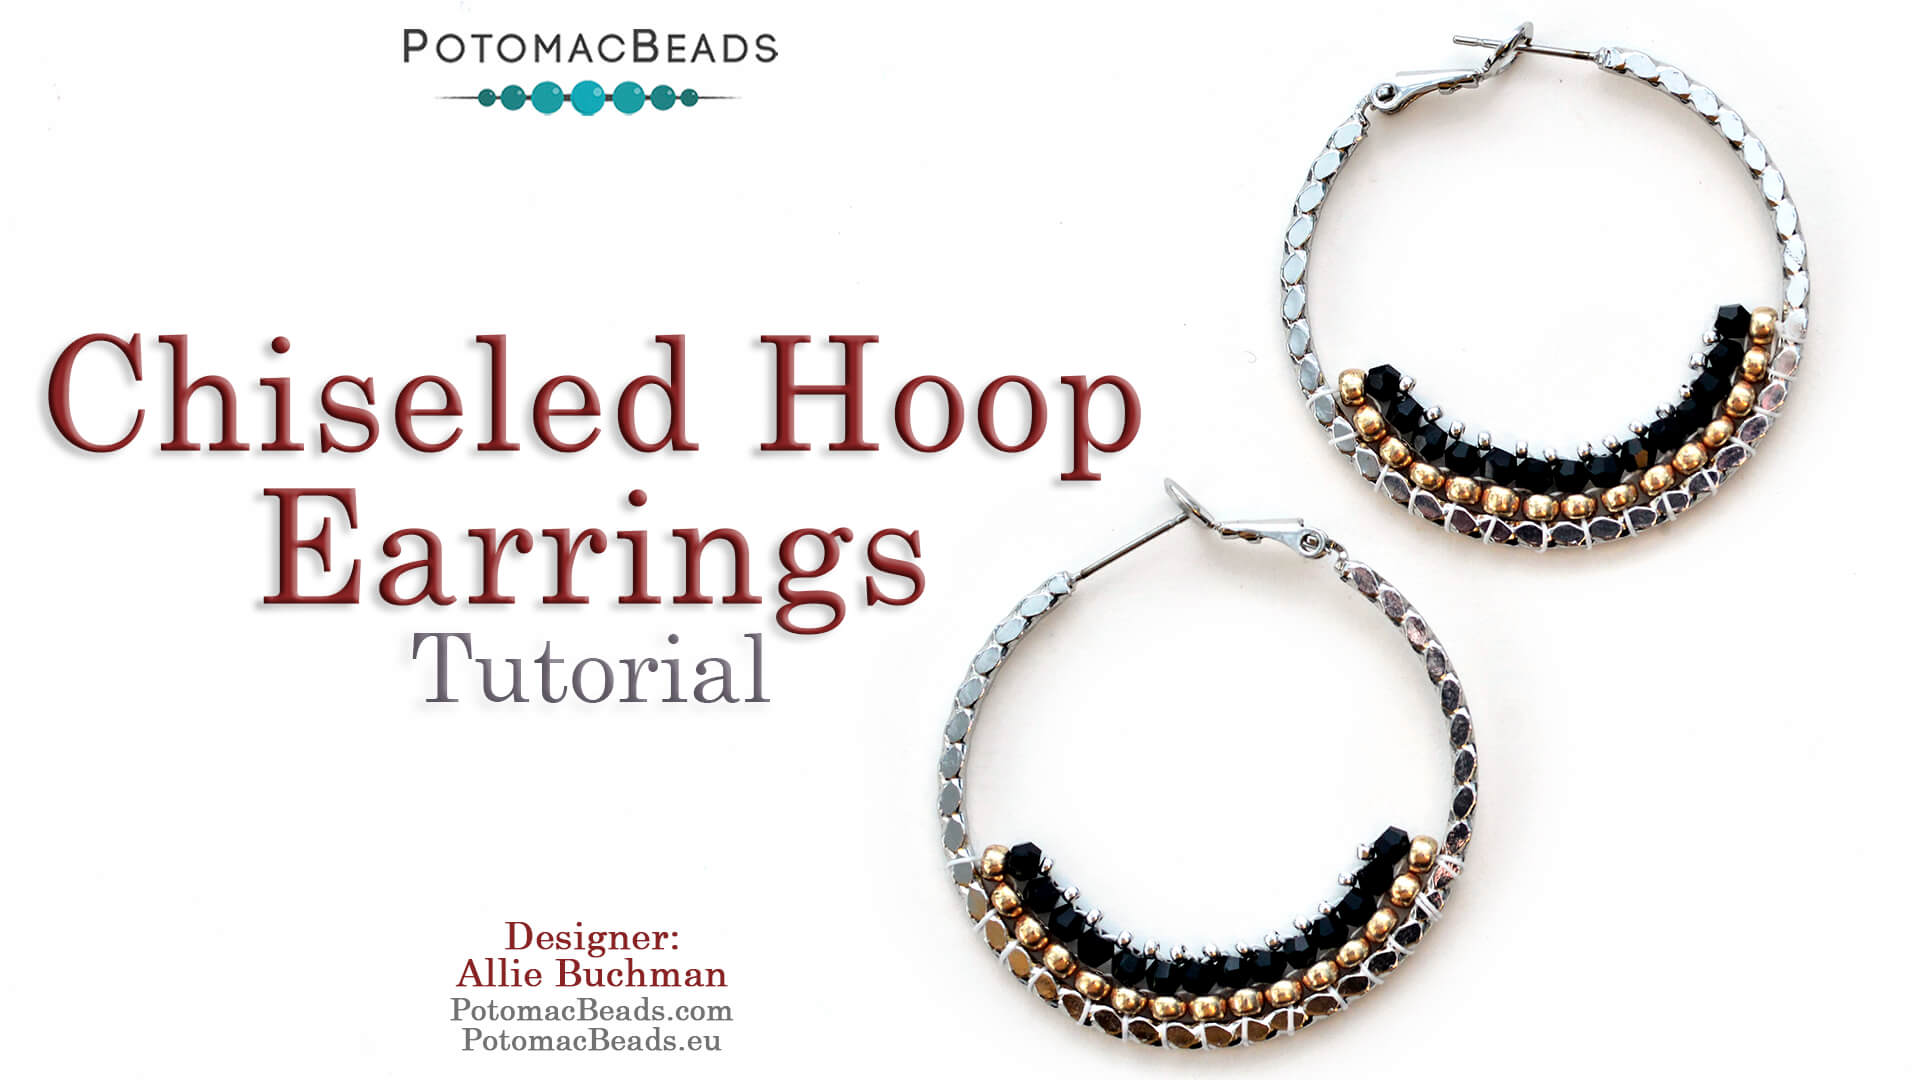 How to Bead / Videos Sorted by Beads / Potomac Crystal Videos / Chiseled Hoop Earrings Tutorial